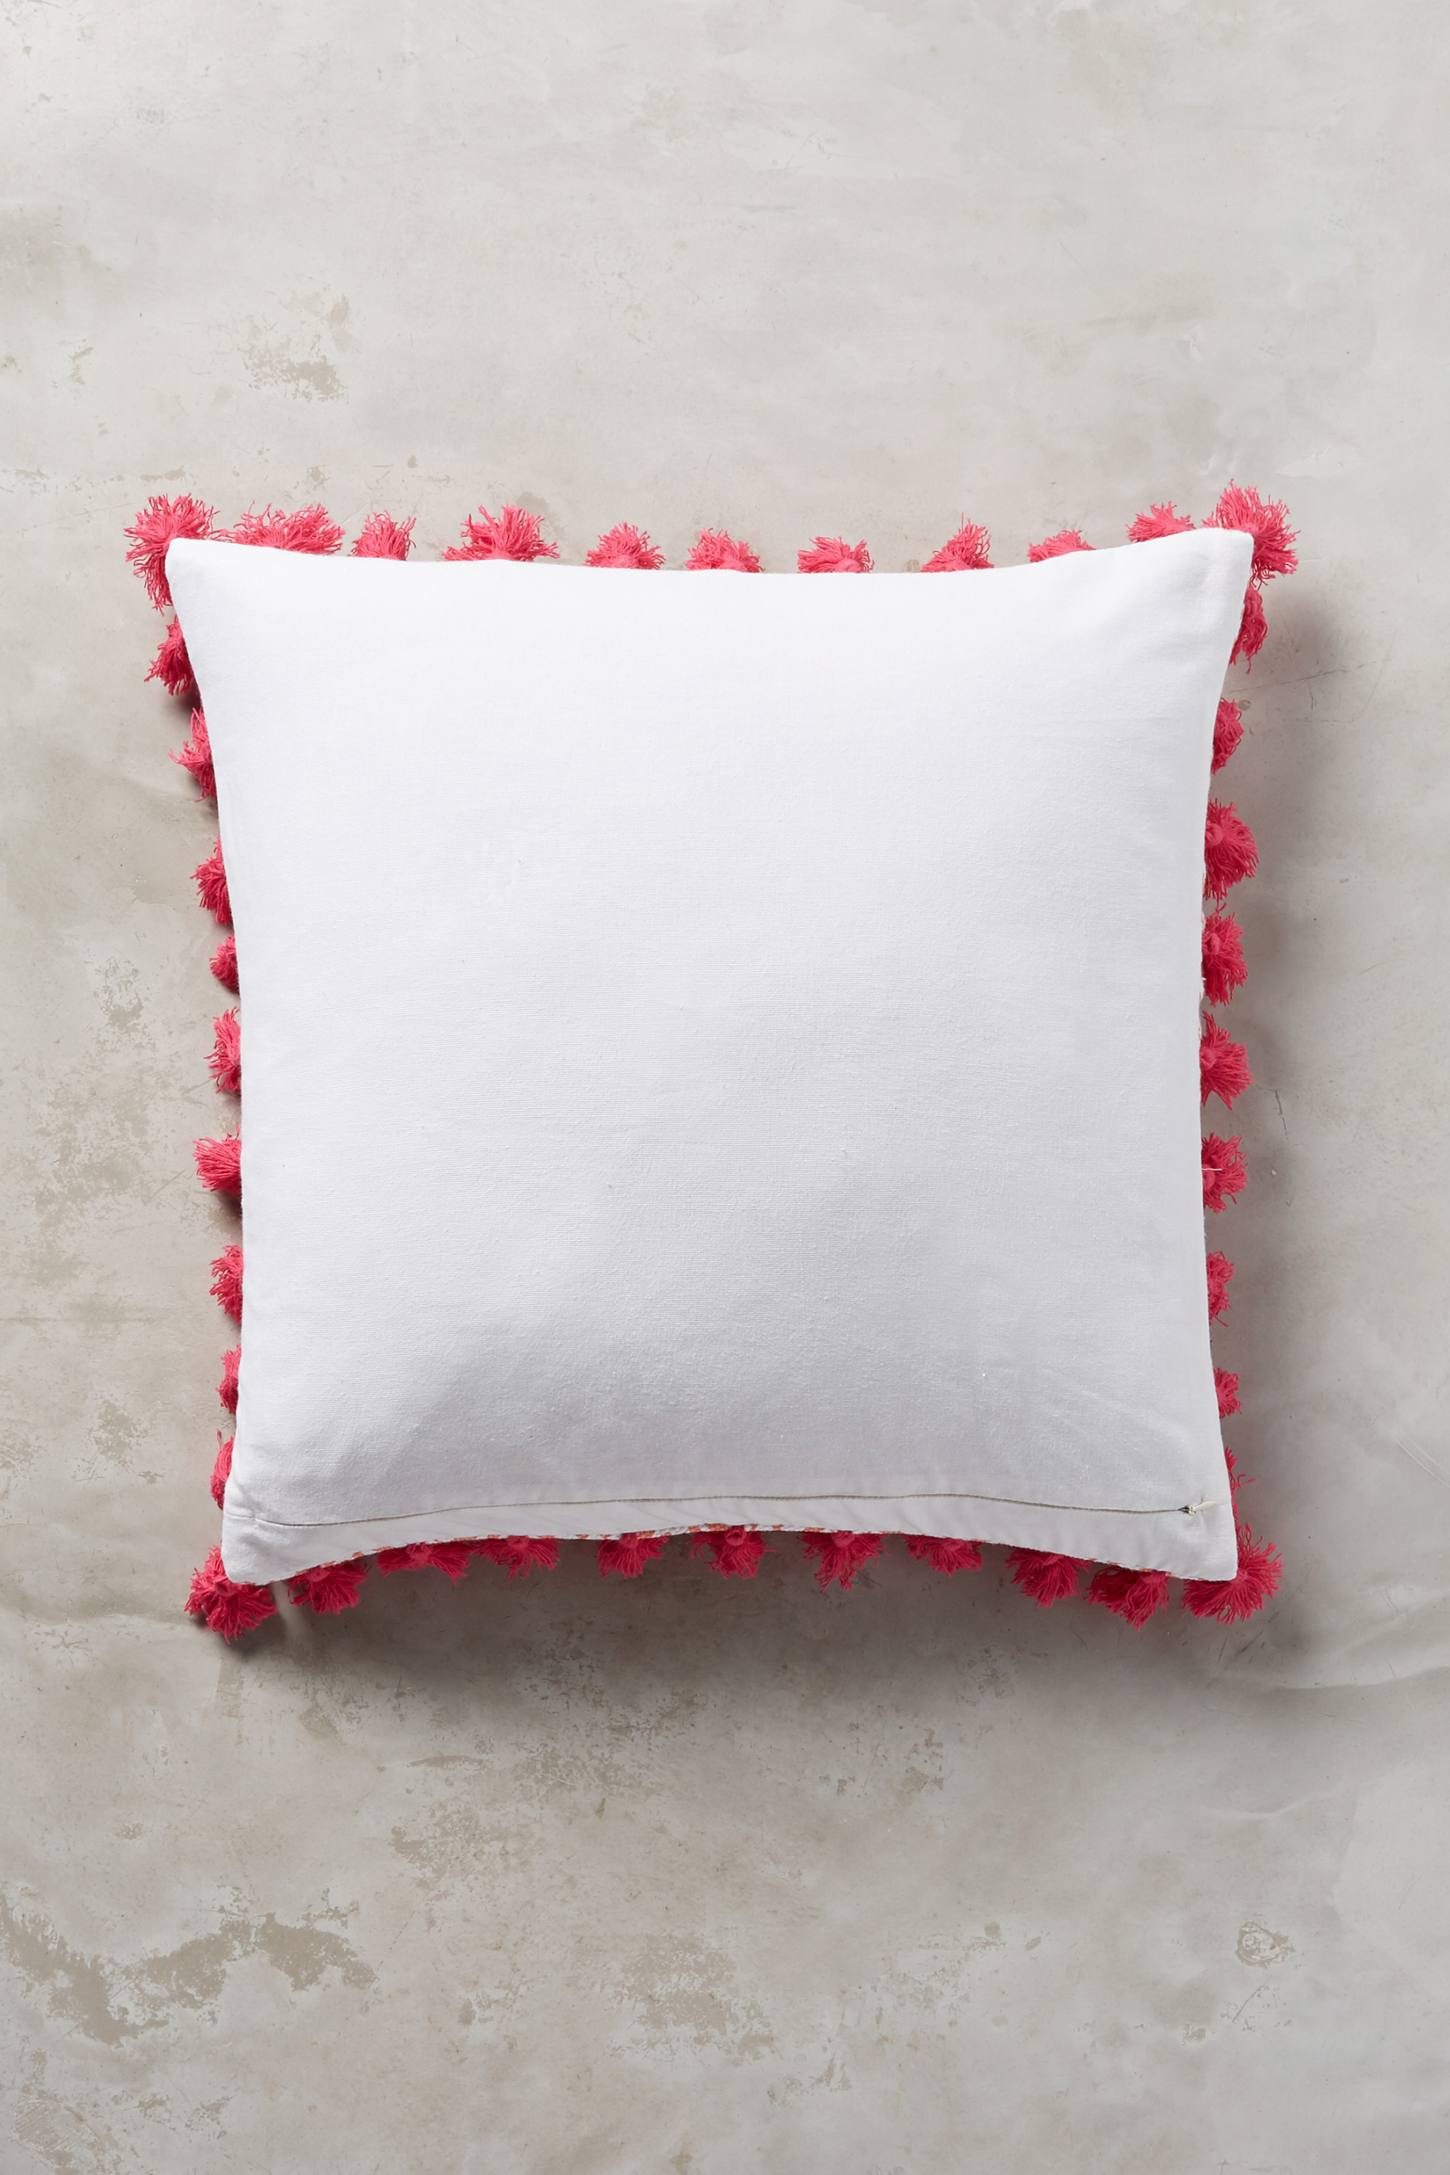 Slide View: 2: Folding Fans Pillow